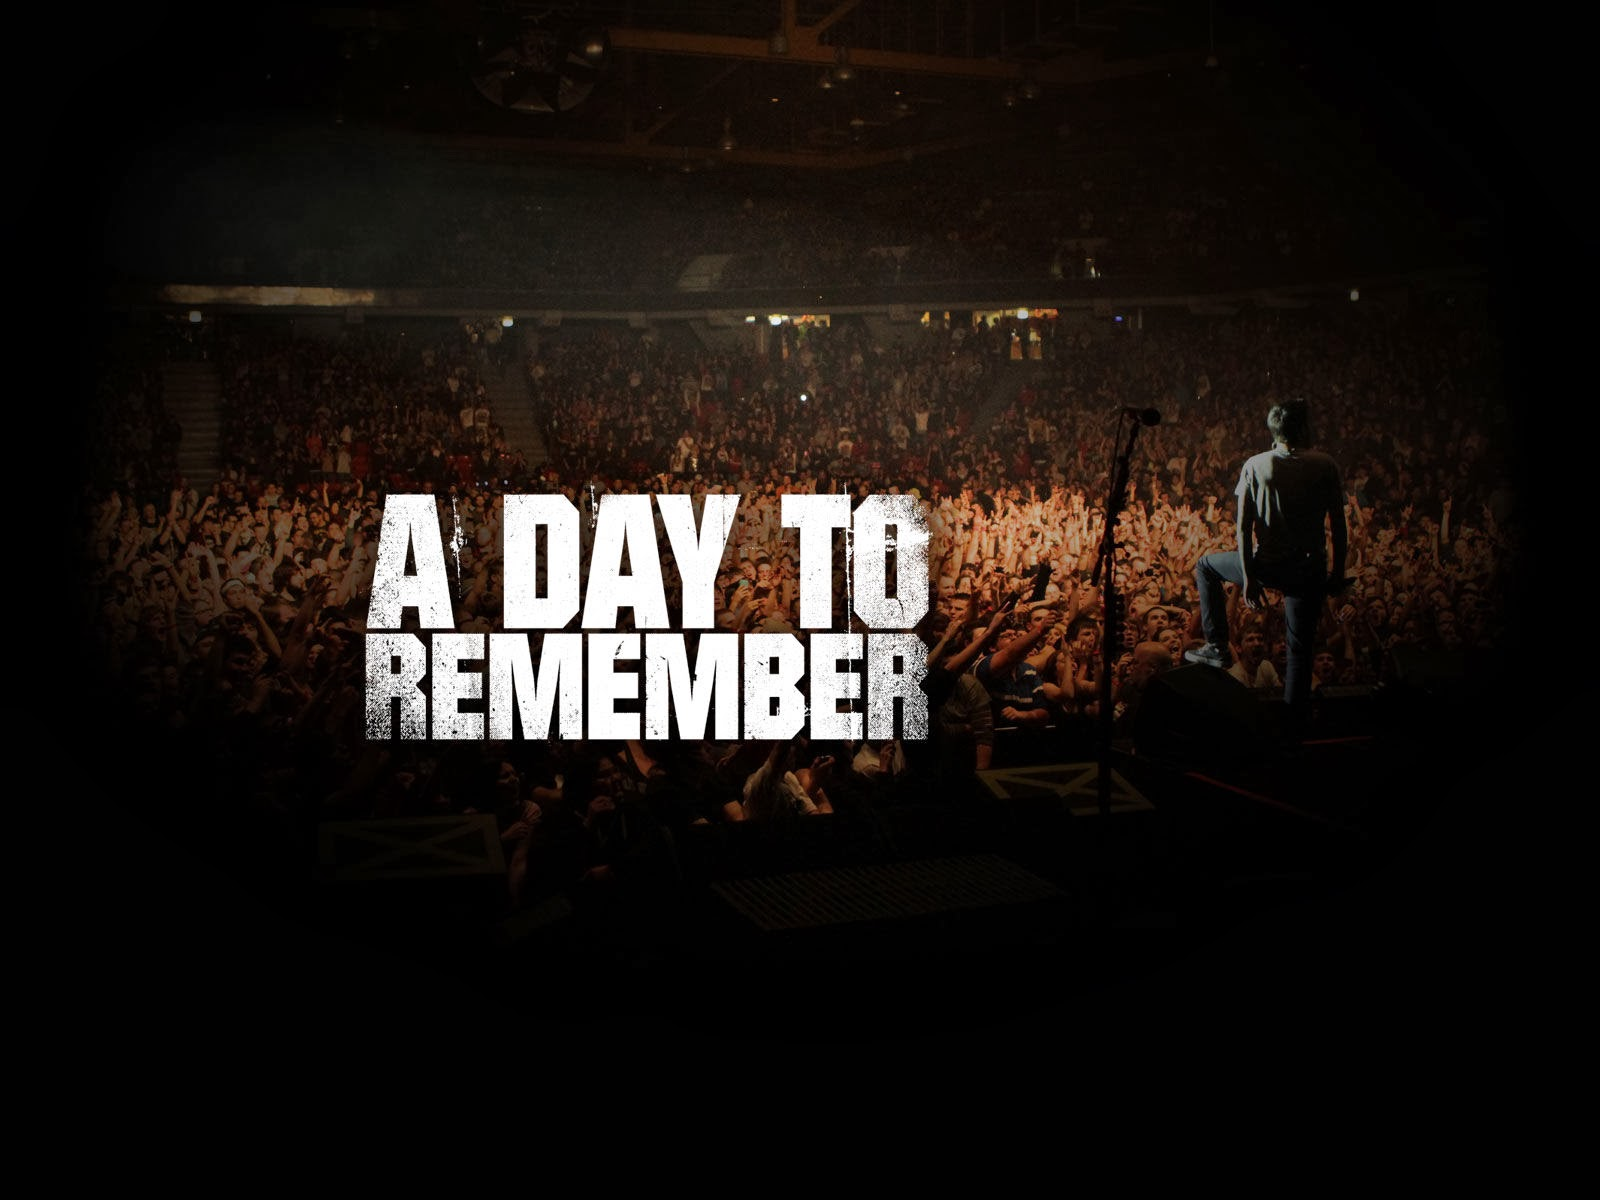 nelena-rockgod: A Day To Remember Wallpapers A Day To Remember Lyrics Wallpaper